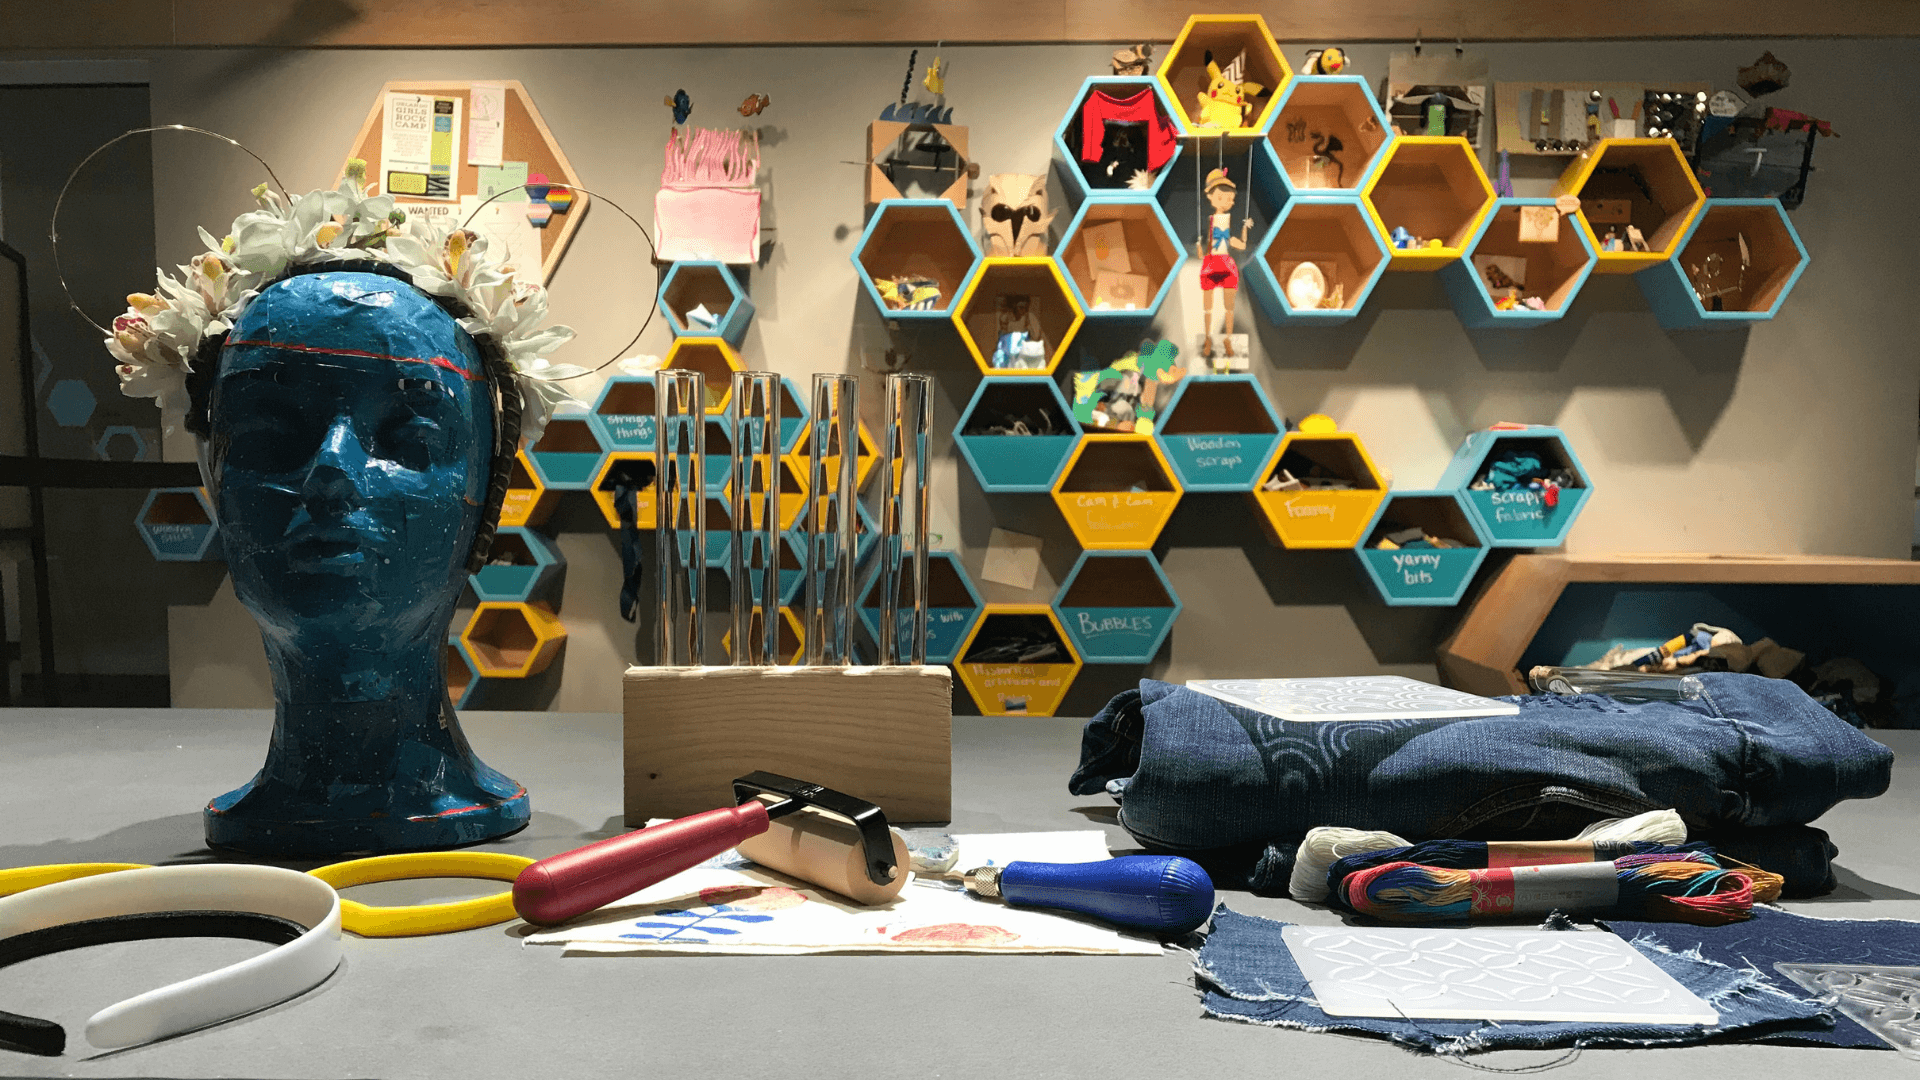 Workshop Materials in The Hive